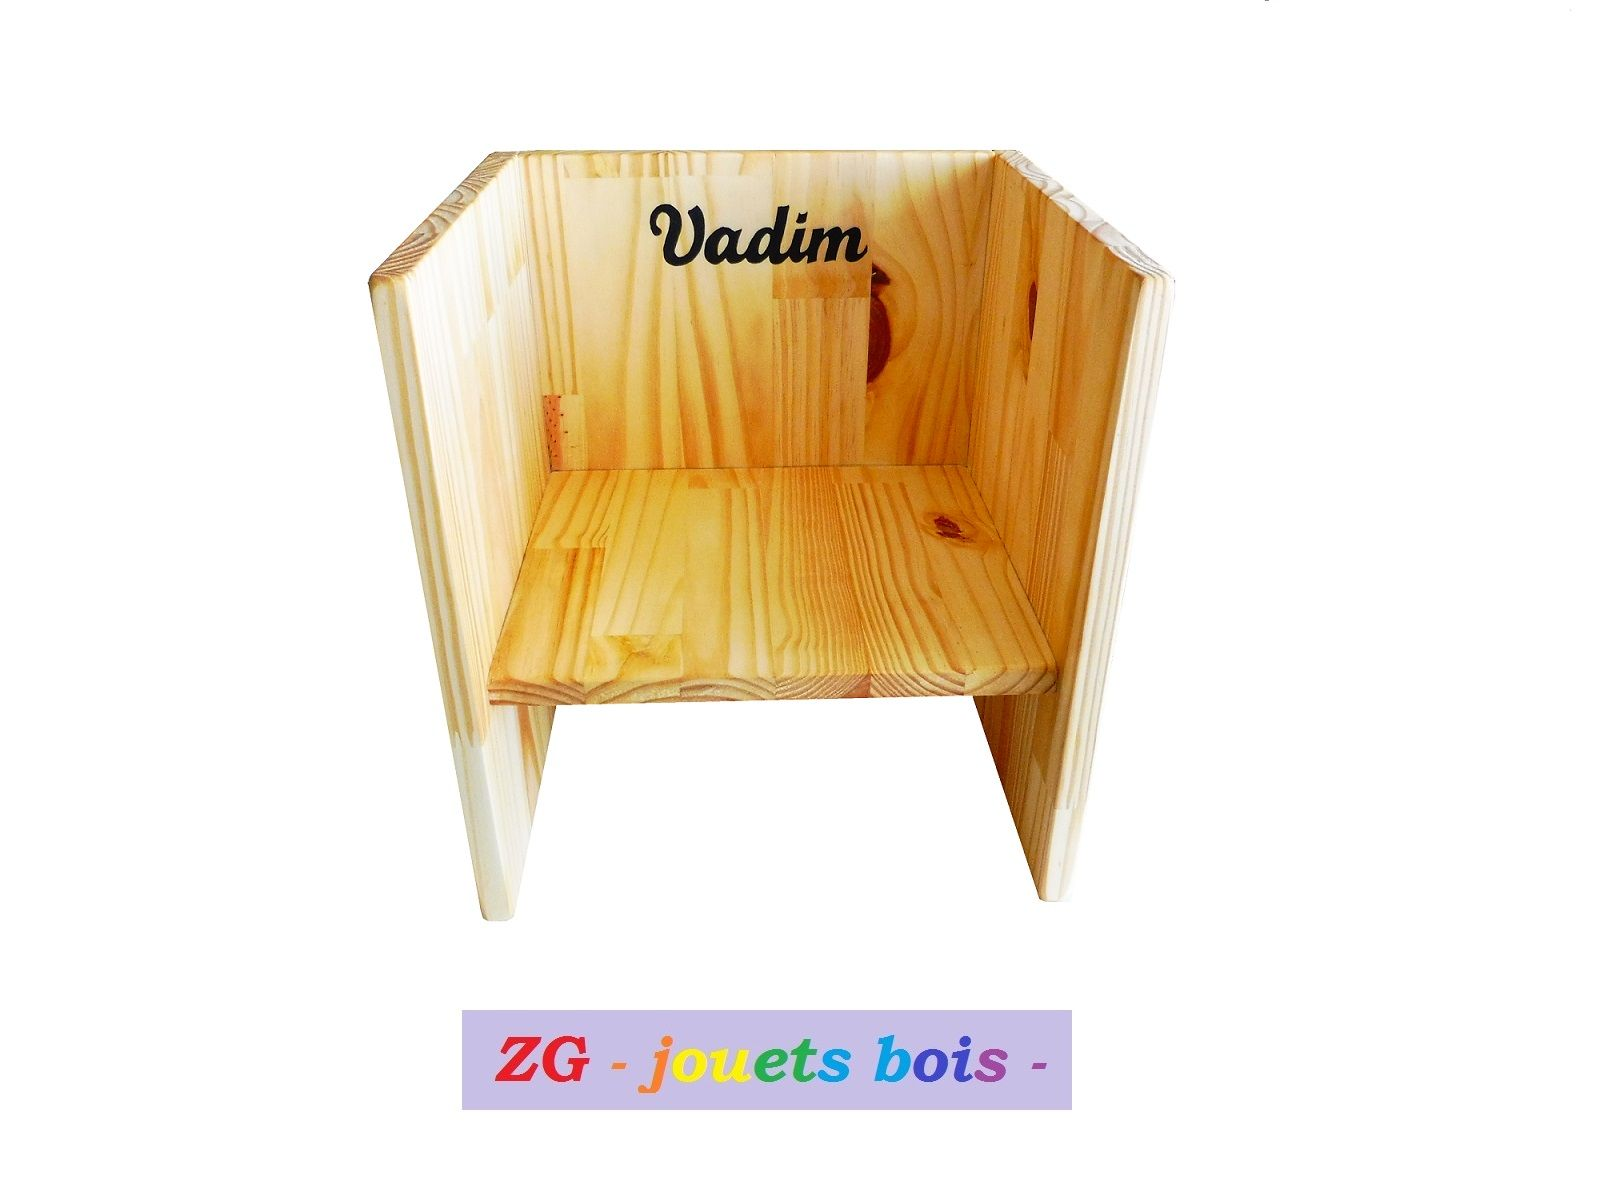 Chaise Cube Montessori Chaise En Bois Evolutive 3en 1 Deux Hauteurs D Assise Table D Appoint Mobilier Bebe Inscription Personnalisable Home Decor Cube Decor